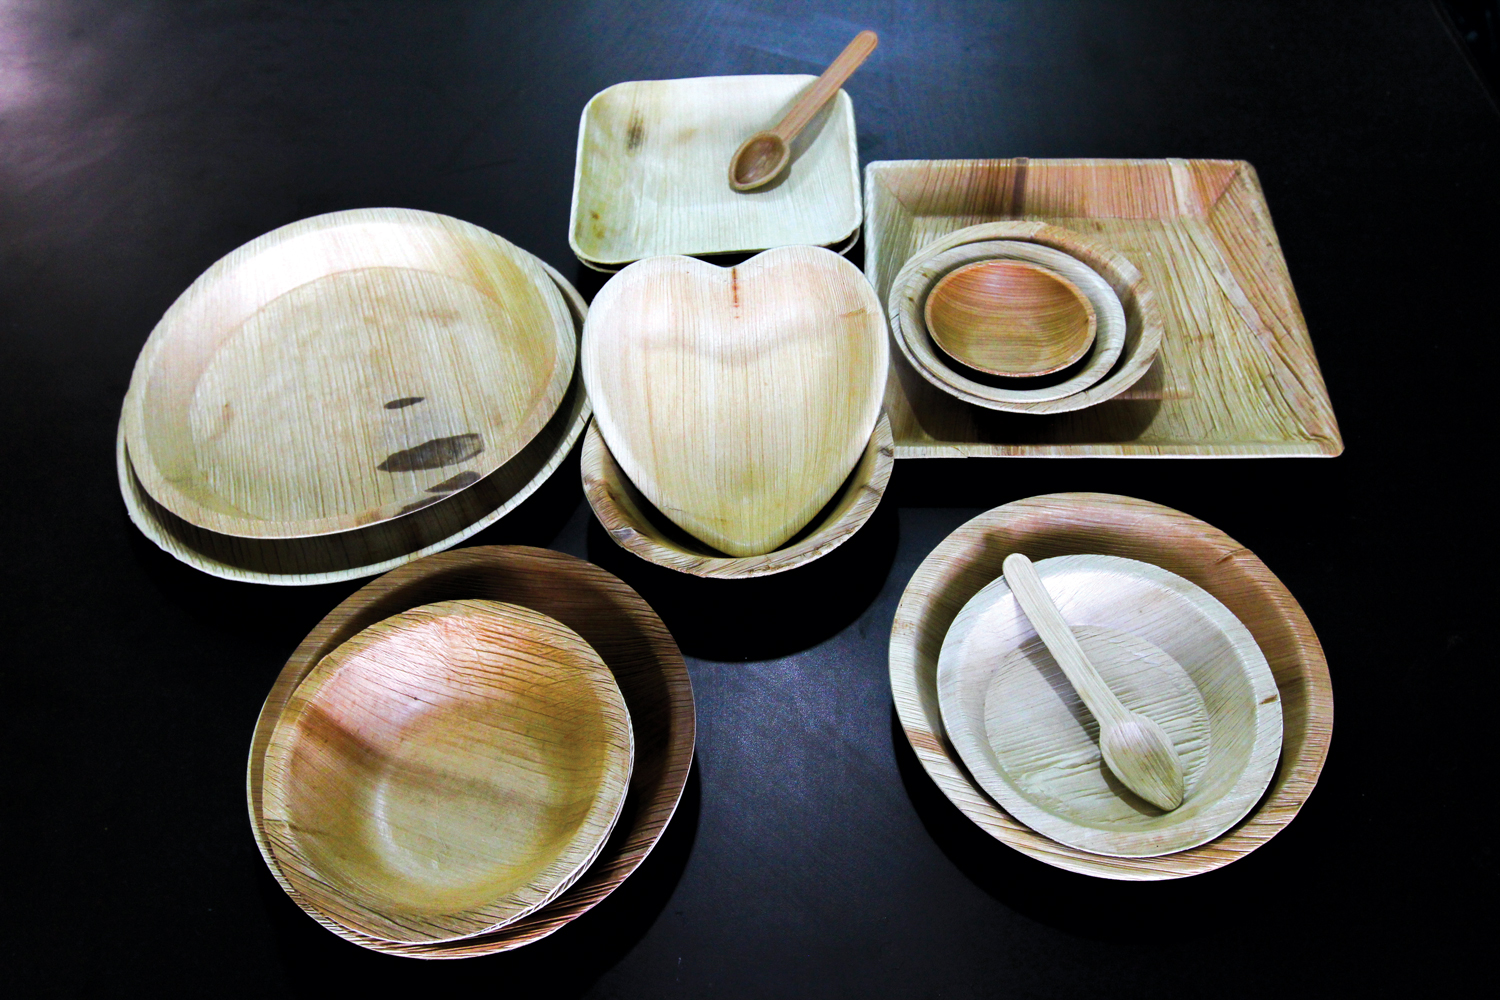 Crafting eco-friendly utensils